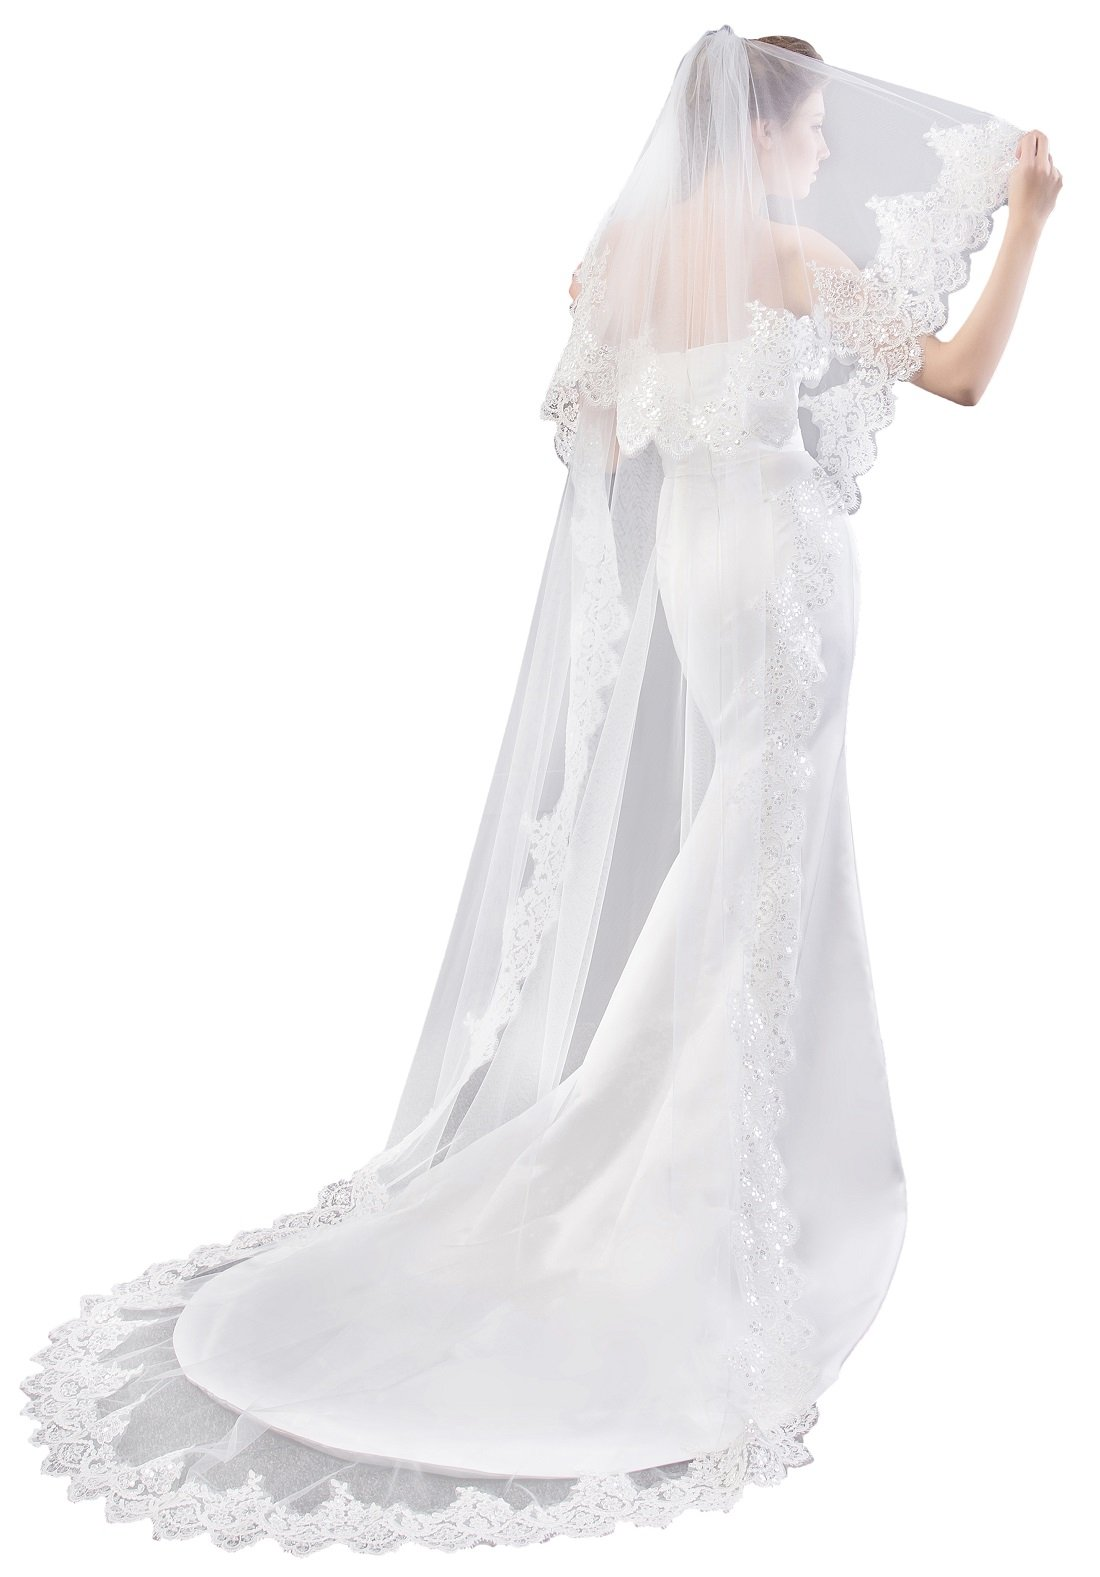 EllieHouse Women's Custom Made Long 2 Tier Wedding Bridal Veil With Free Comb White E74 by EllieHouse